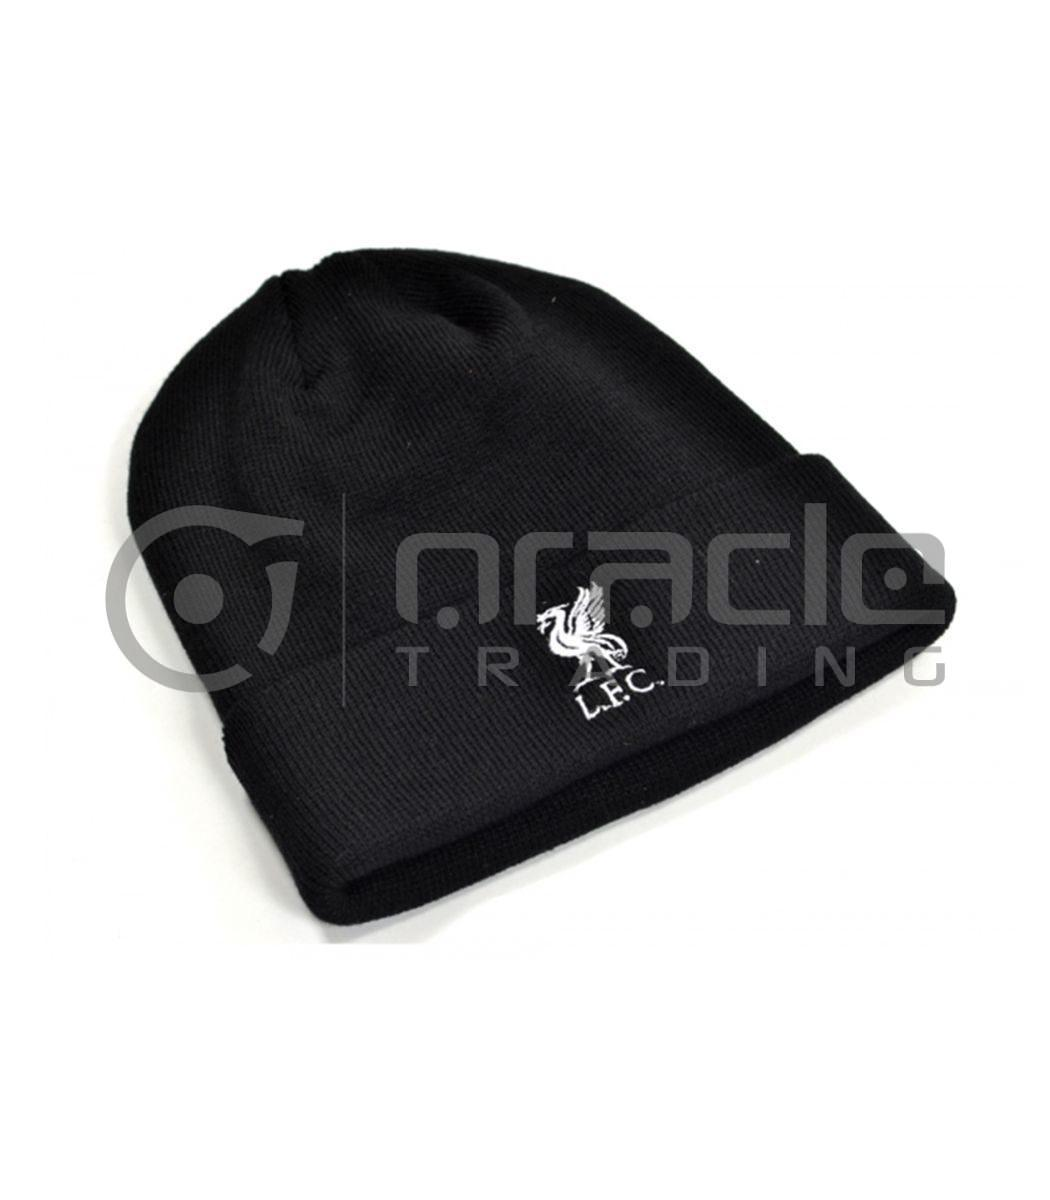 Liverpool Fold-up Beanie - Black